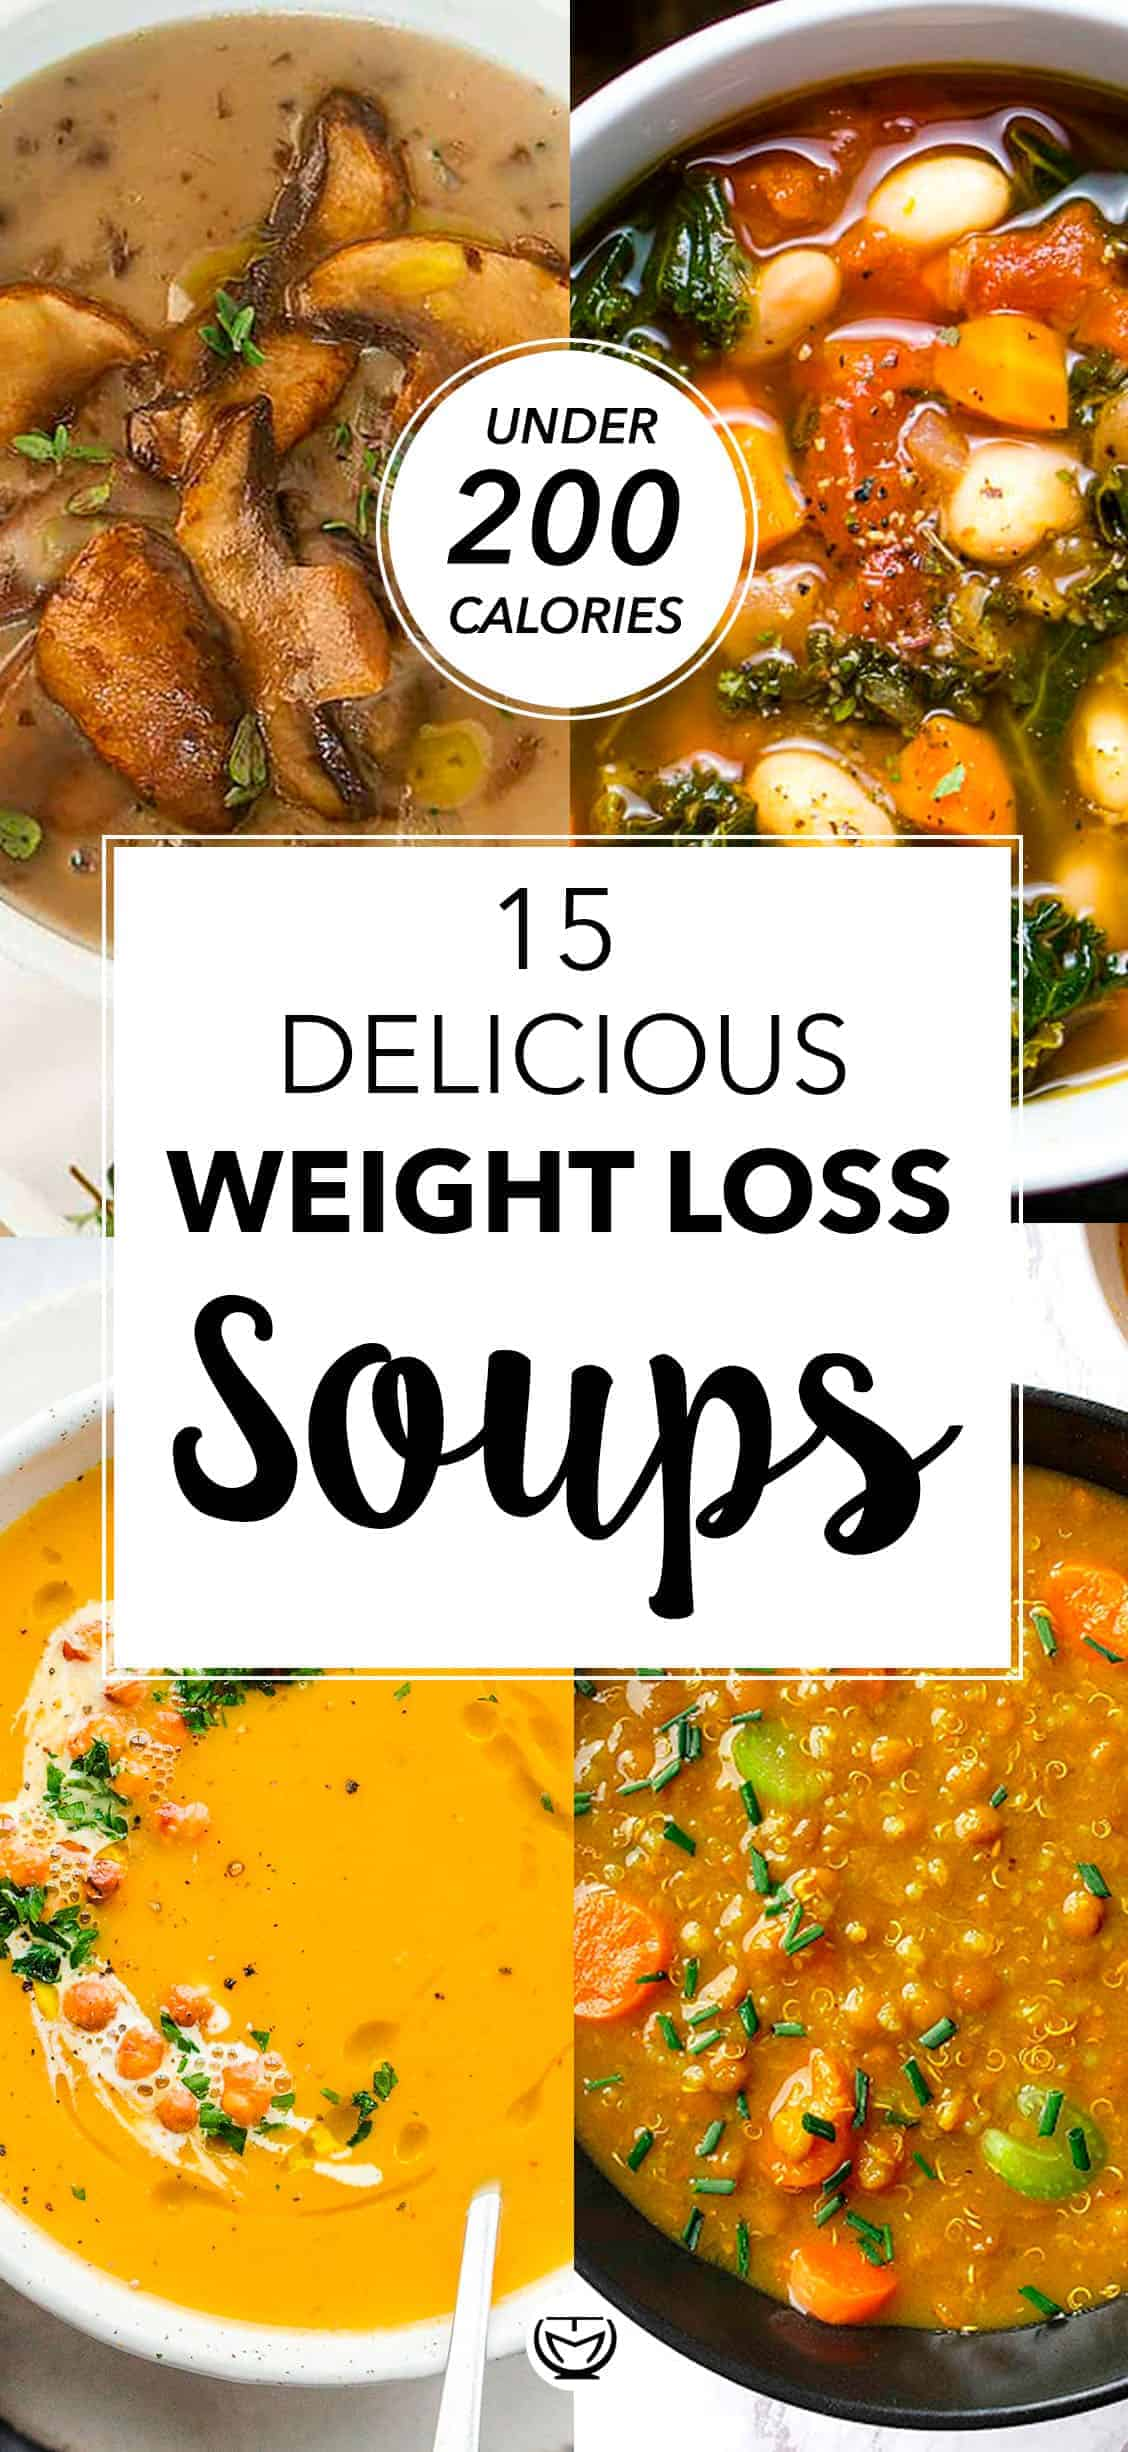 These delicious weight loss soups are a must for everyone after having indulged in the rich festive food. They're warming, vegetarian, hearty and tadadaaa... They contain <strong>LESS THAN 200 CALORIES PER SERVING! #souprecipes #healthyrecipes #weightlossmeals #lowcalorierecipes #lowcaloriemeals #lowcaloriedinners